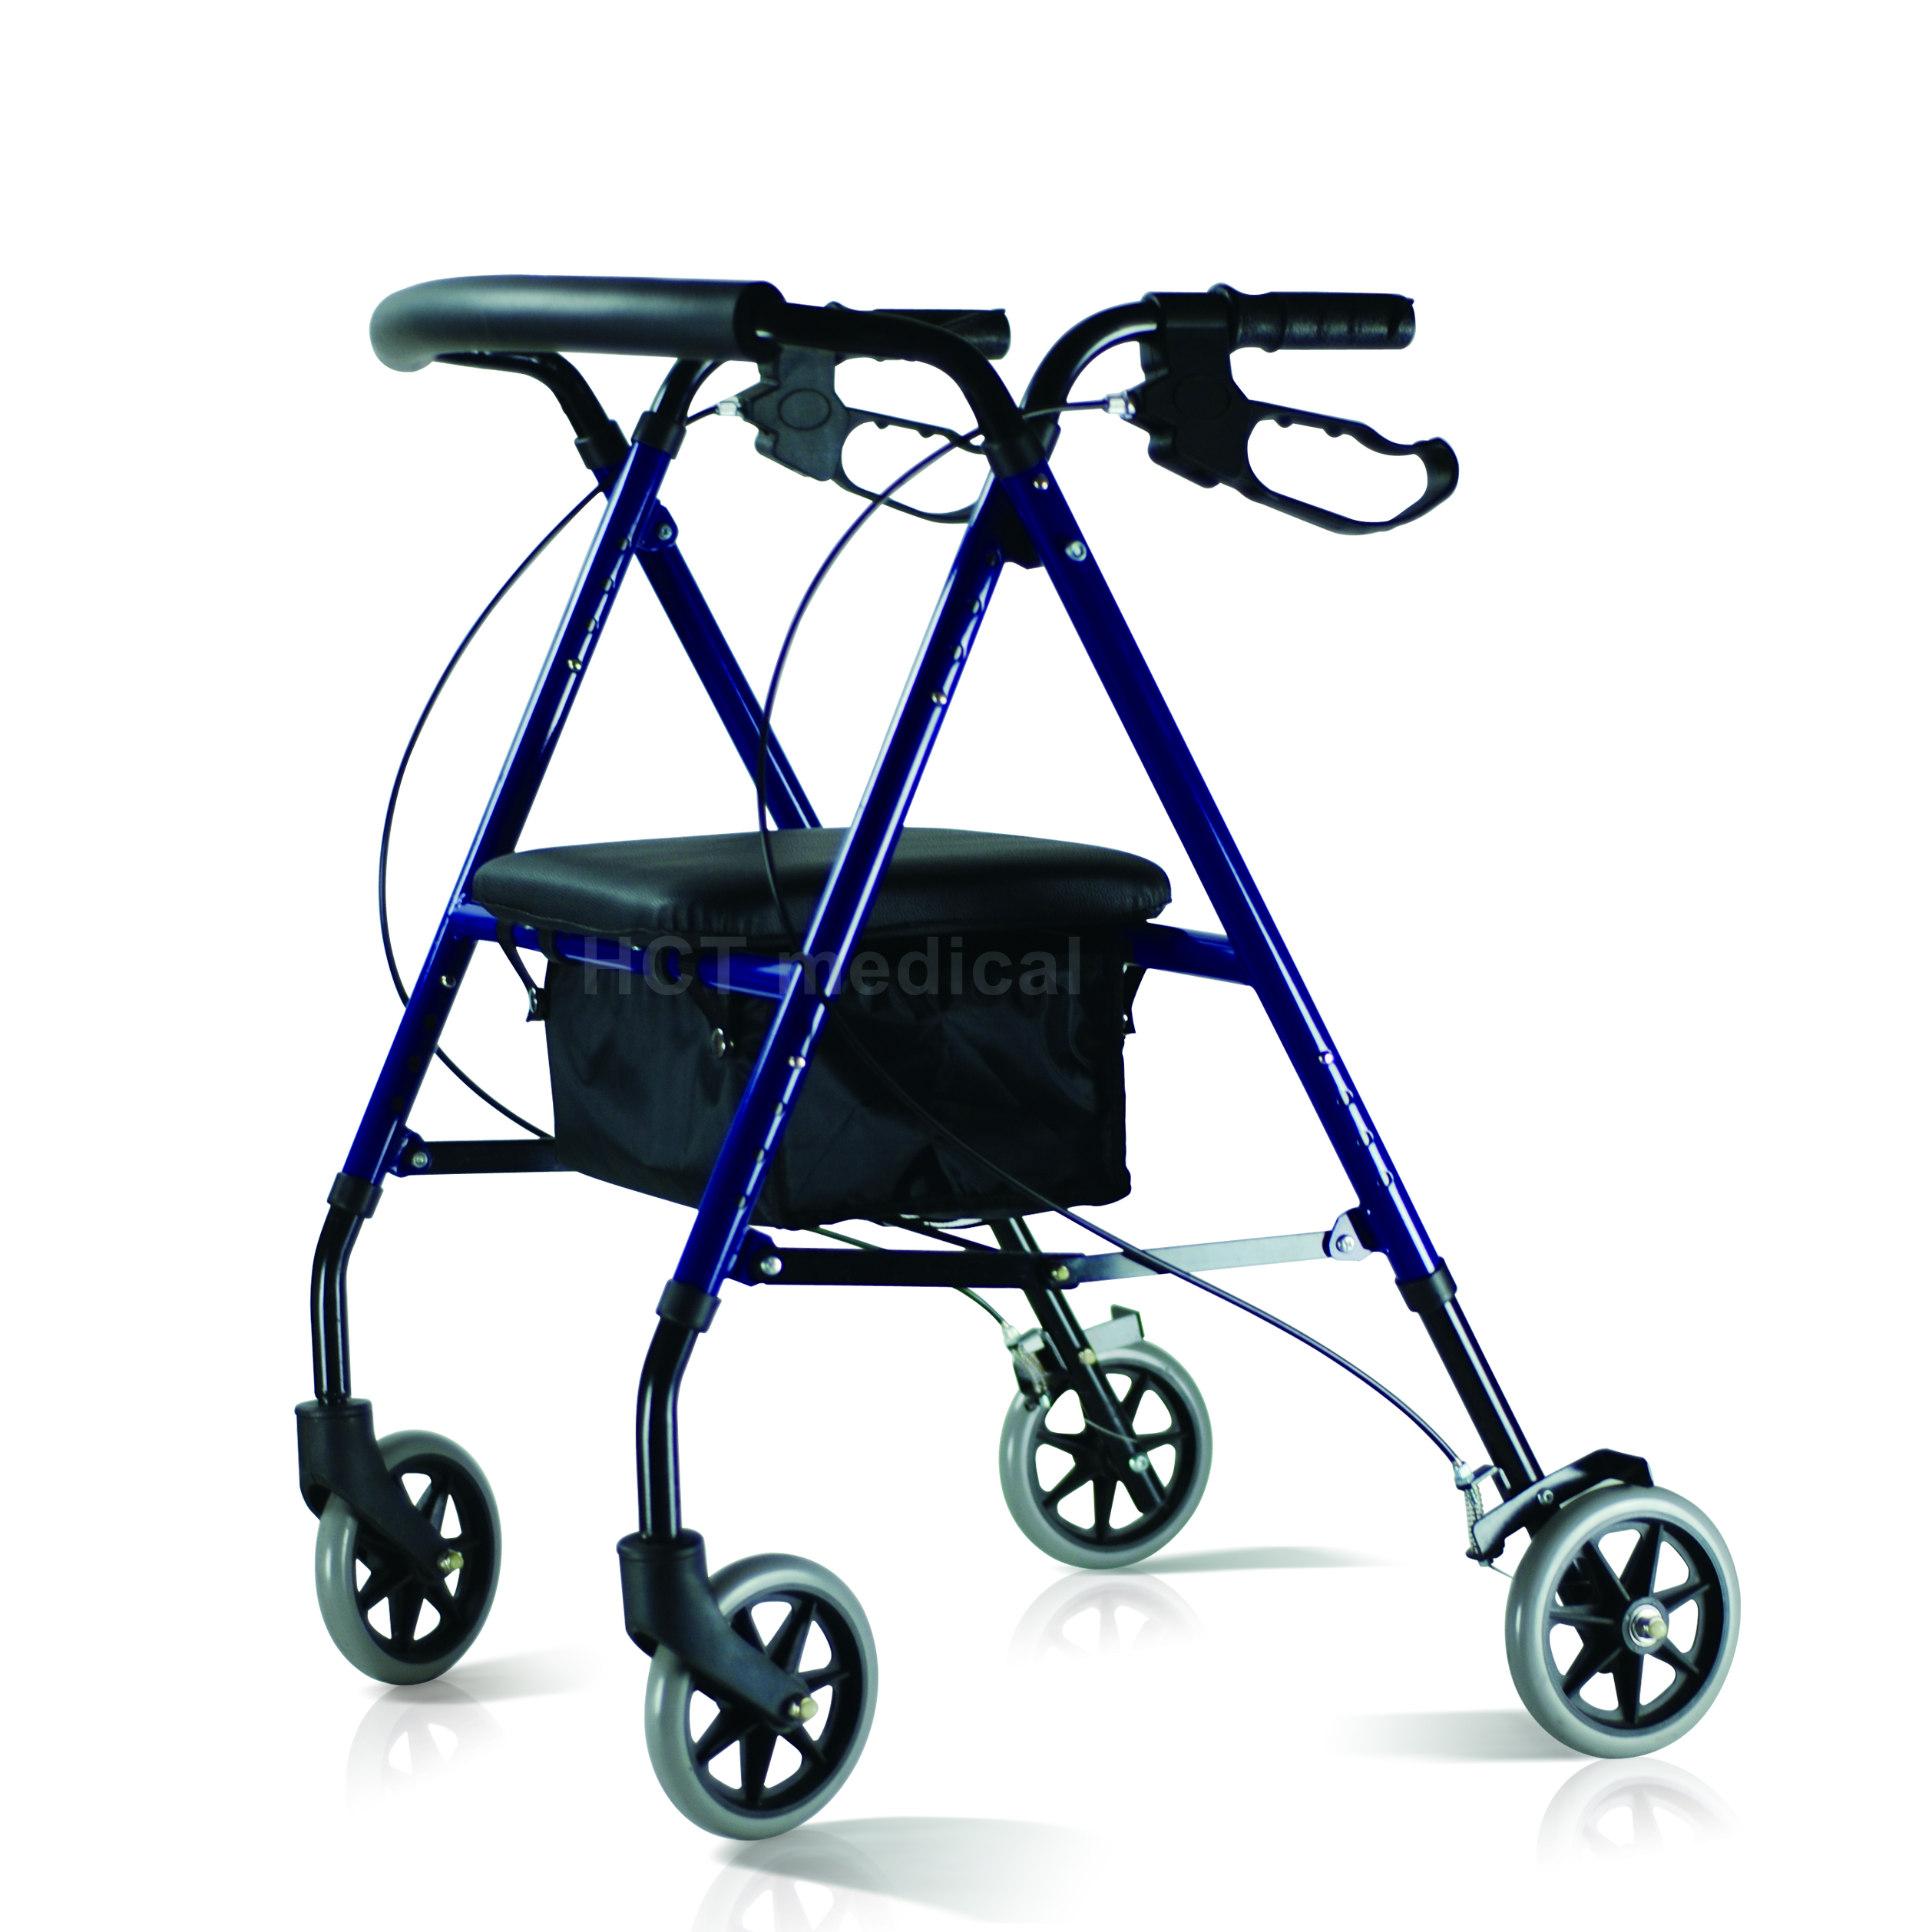 HCT Medical Steel Rollator with Bag and Seat HCT-9130 Rollator Walker image17